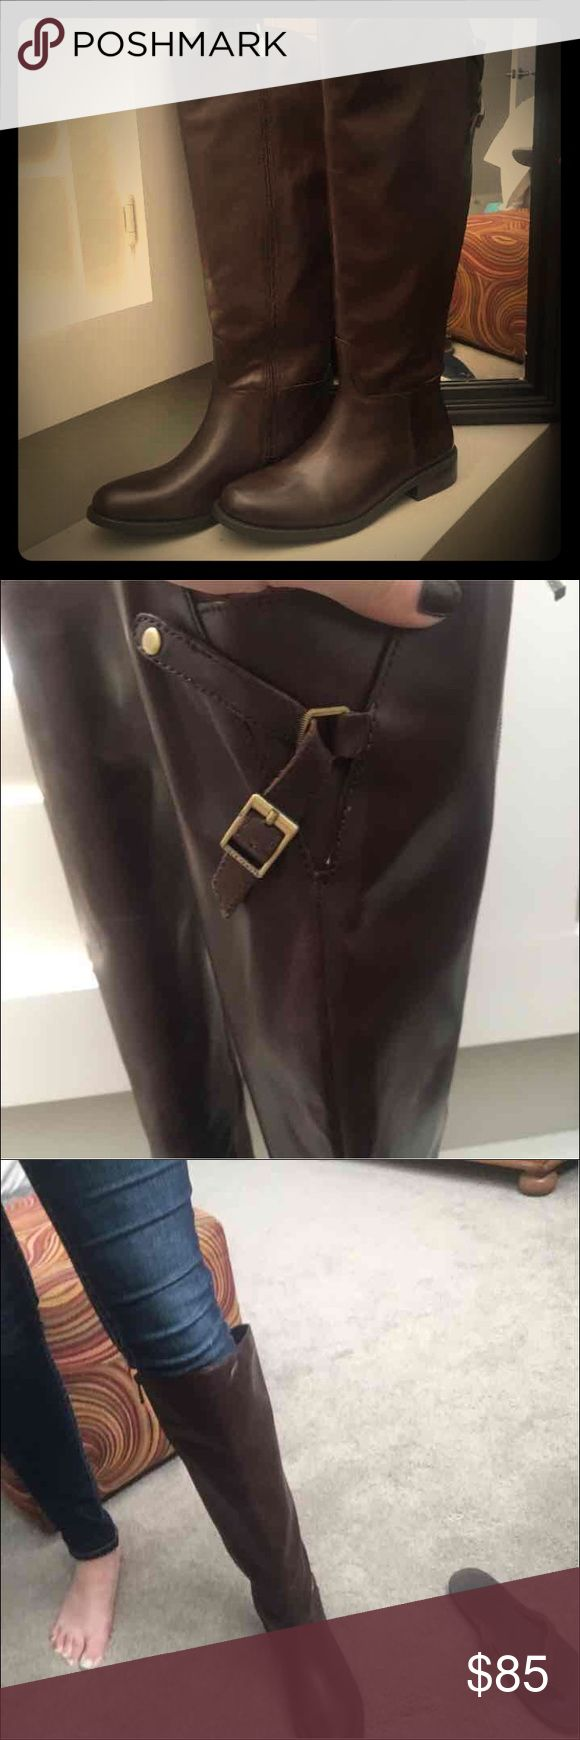 Brown Vince Camuto Riding Boots Brown Kadia Vince Camuto riding boots. These are brand new! Perfect condition, do NOT fit true to size. These are an 8 but will list as a 7.5 because that is the size they would fit! Reviews on Macy's and Nordstrom both also lean towards them fitting smaller! Vince Camuto Shoes